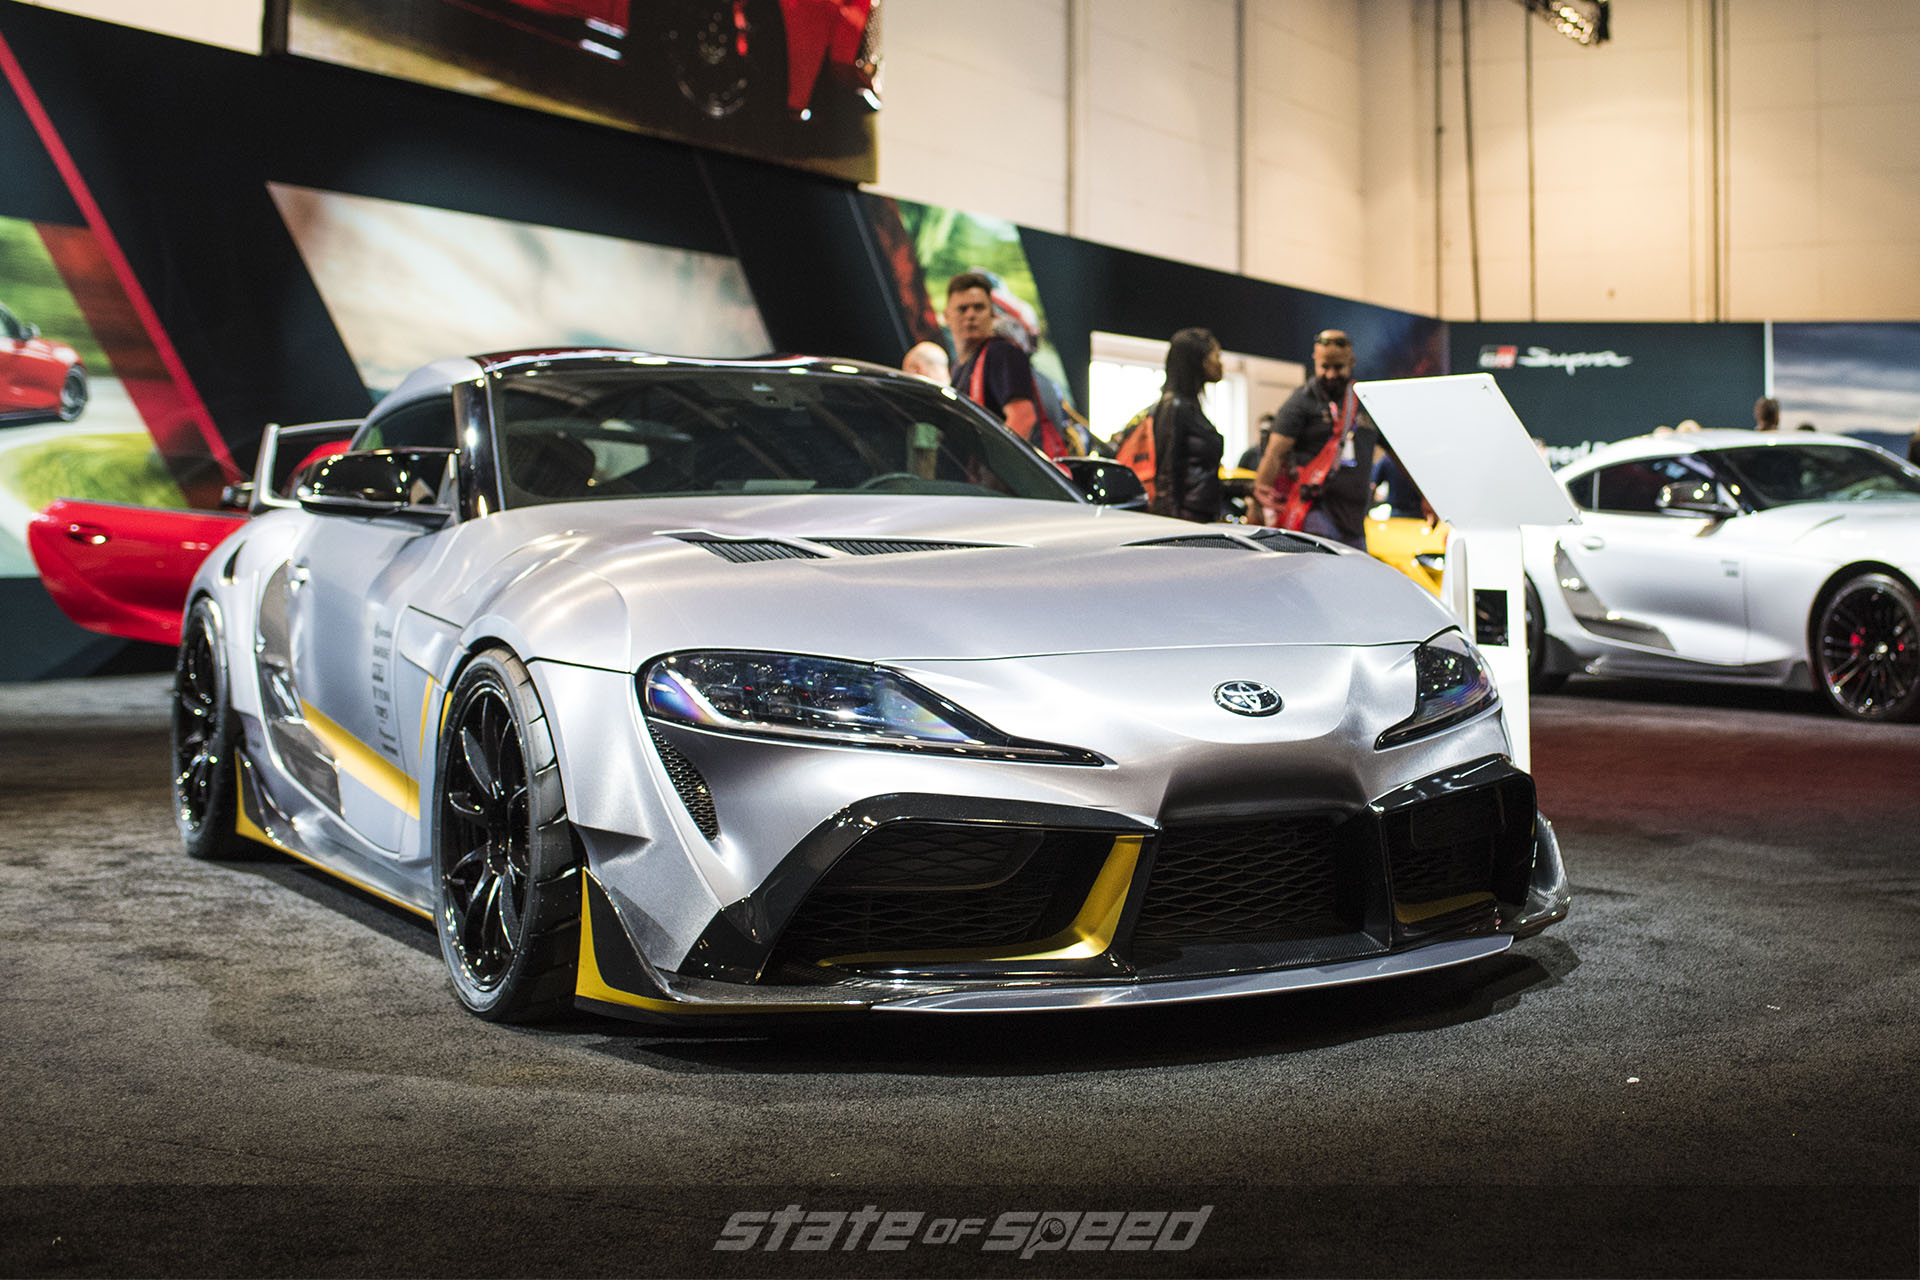 MKV 3000GT Supra at the Toyota Corporate display at SEMA